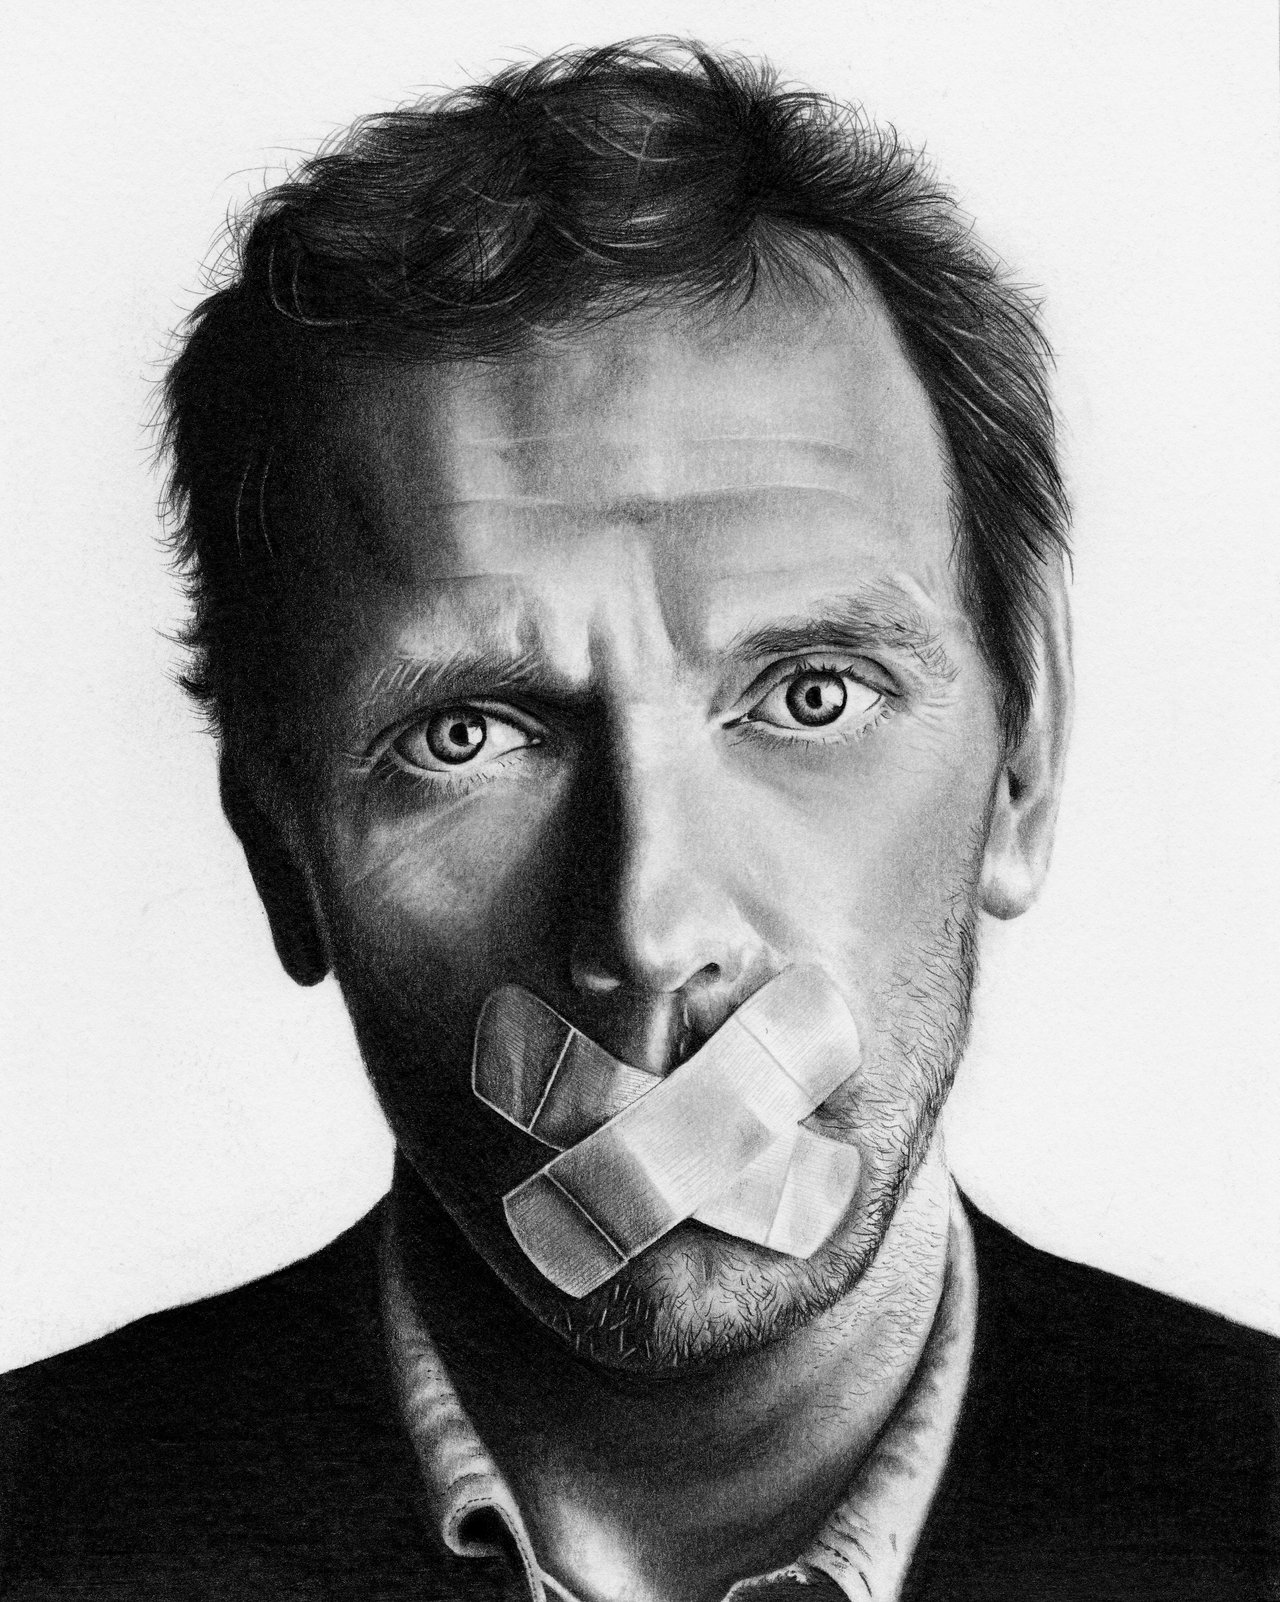 Dr. House - Hugh Laurie